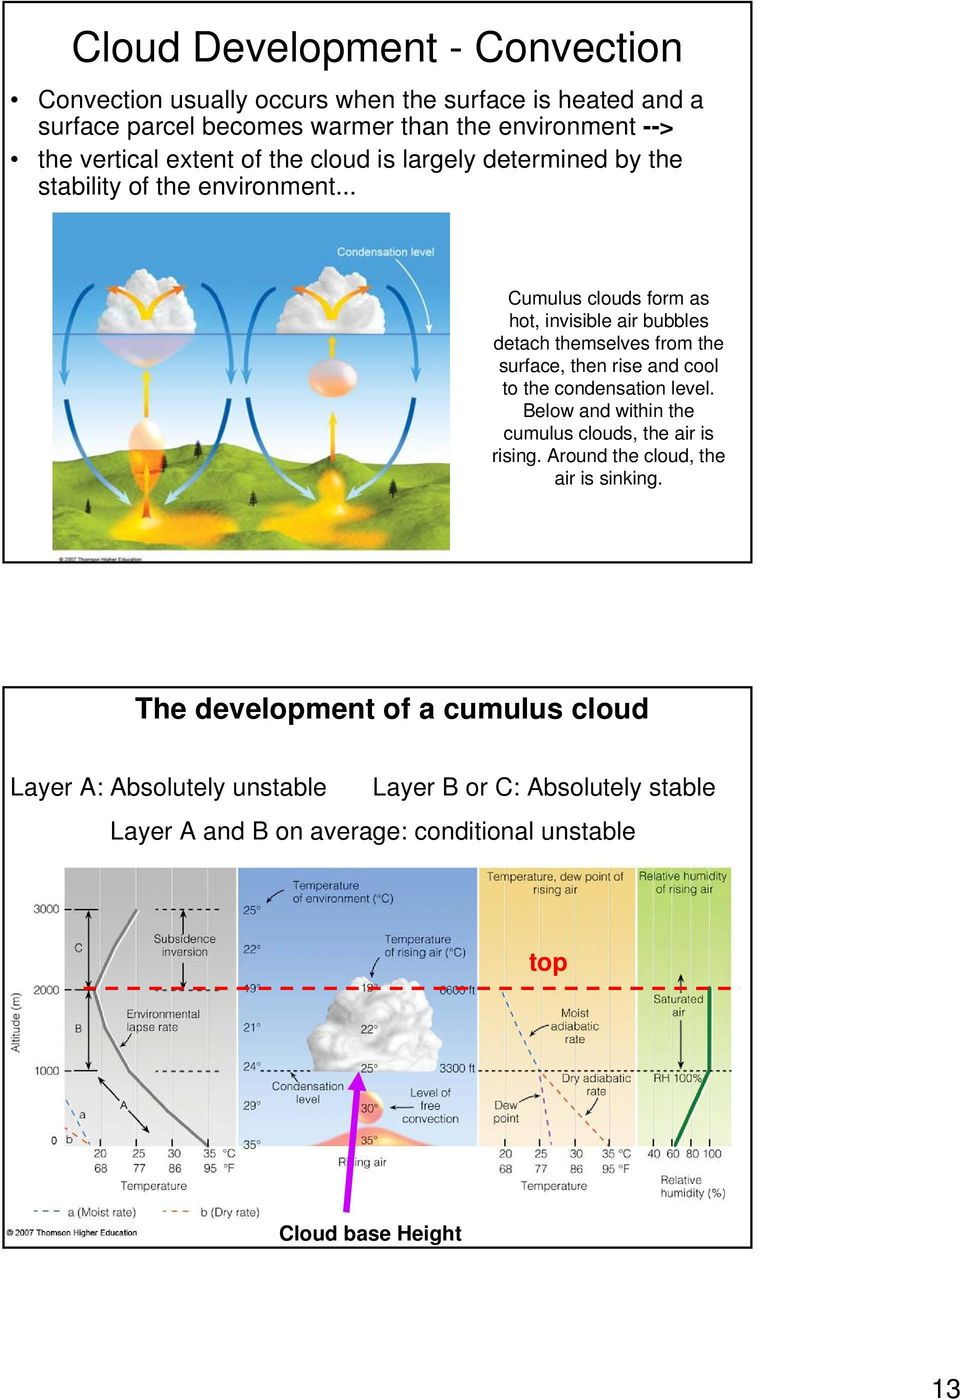 .. Cumulus clouds form as hot, invisible air bubbles detach themselves from the surface, then rise and cool to the condensation level.